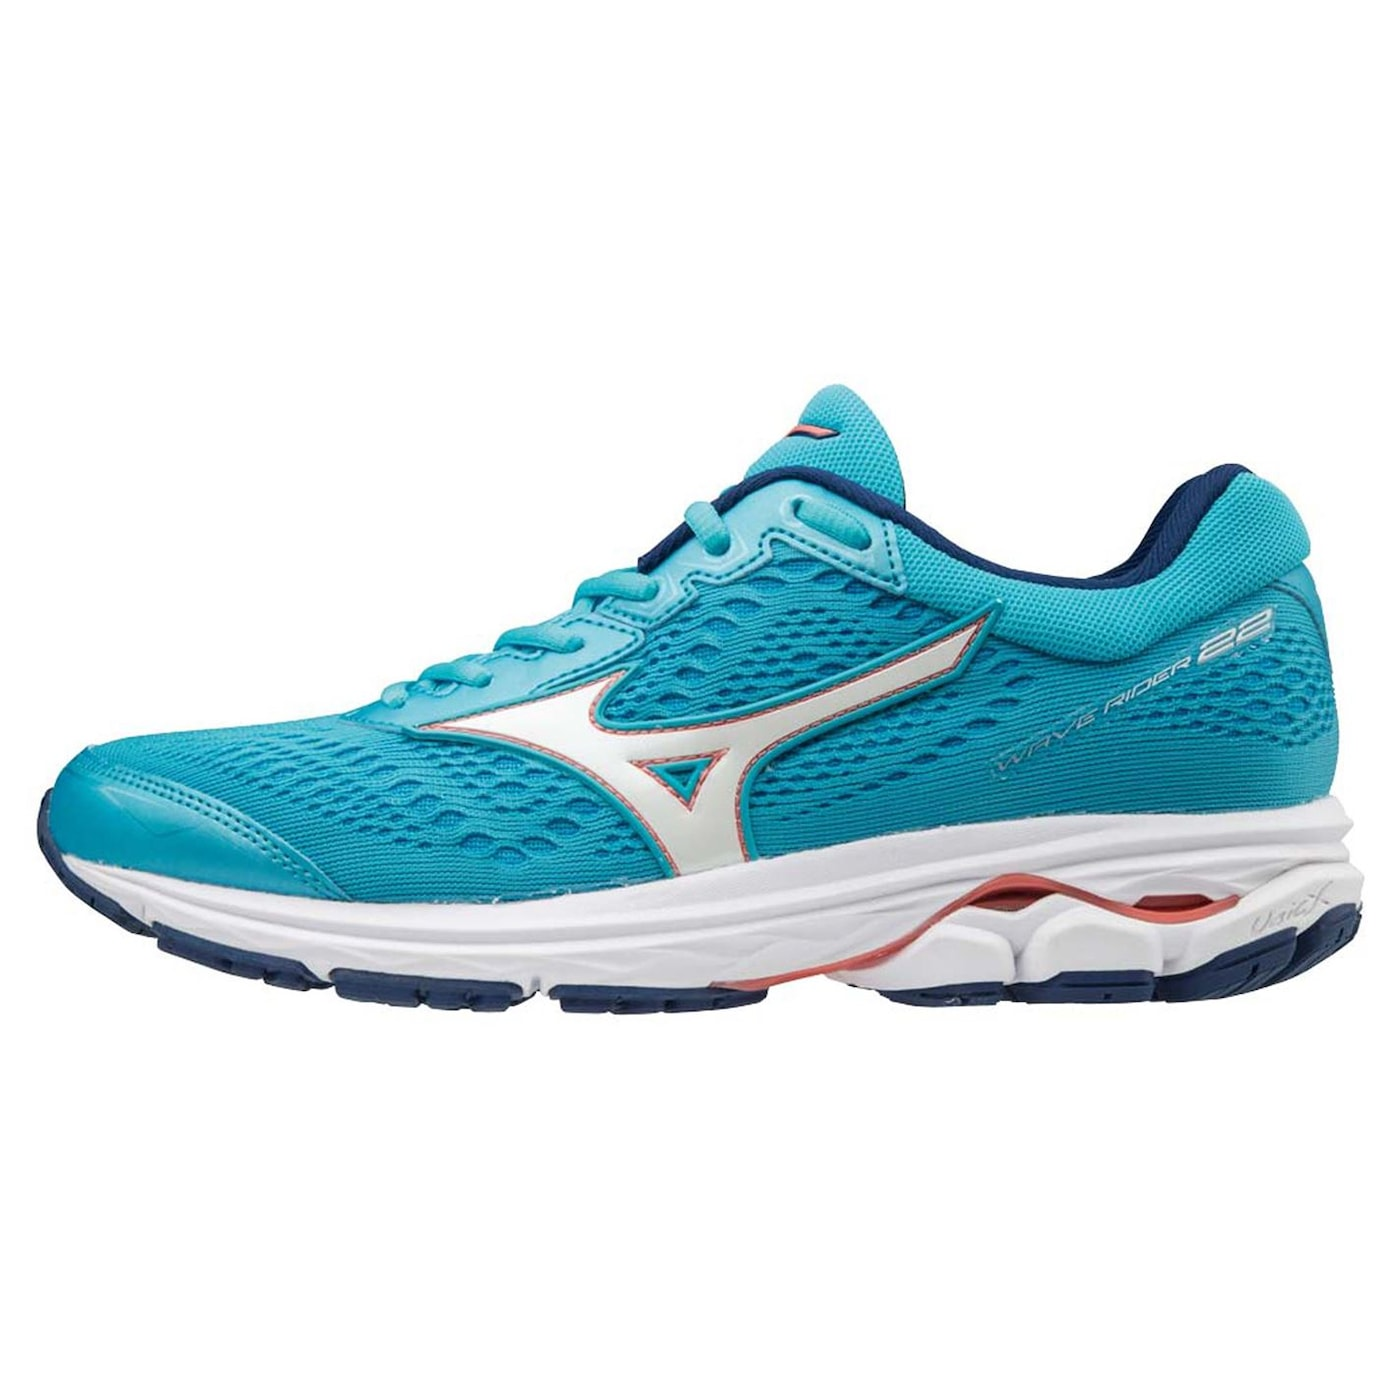 Mizuno Wave Rider 22 Ladies Running Shoes